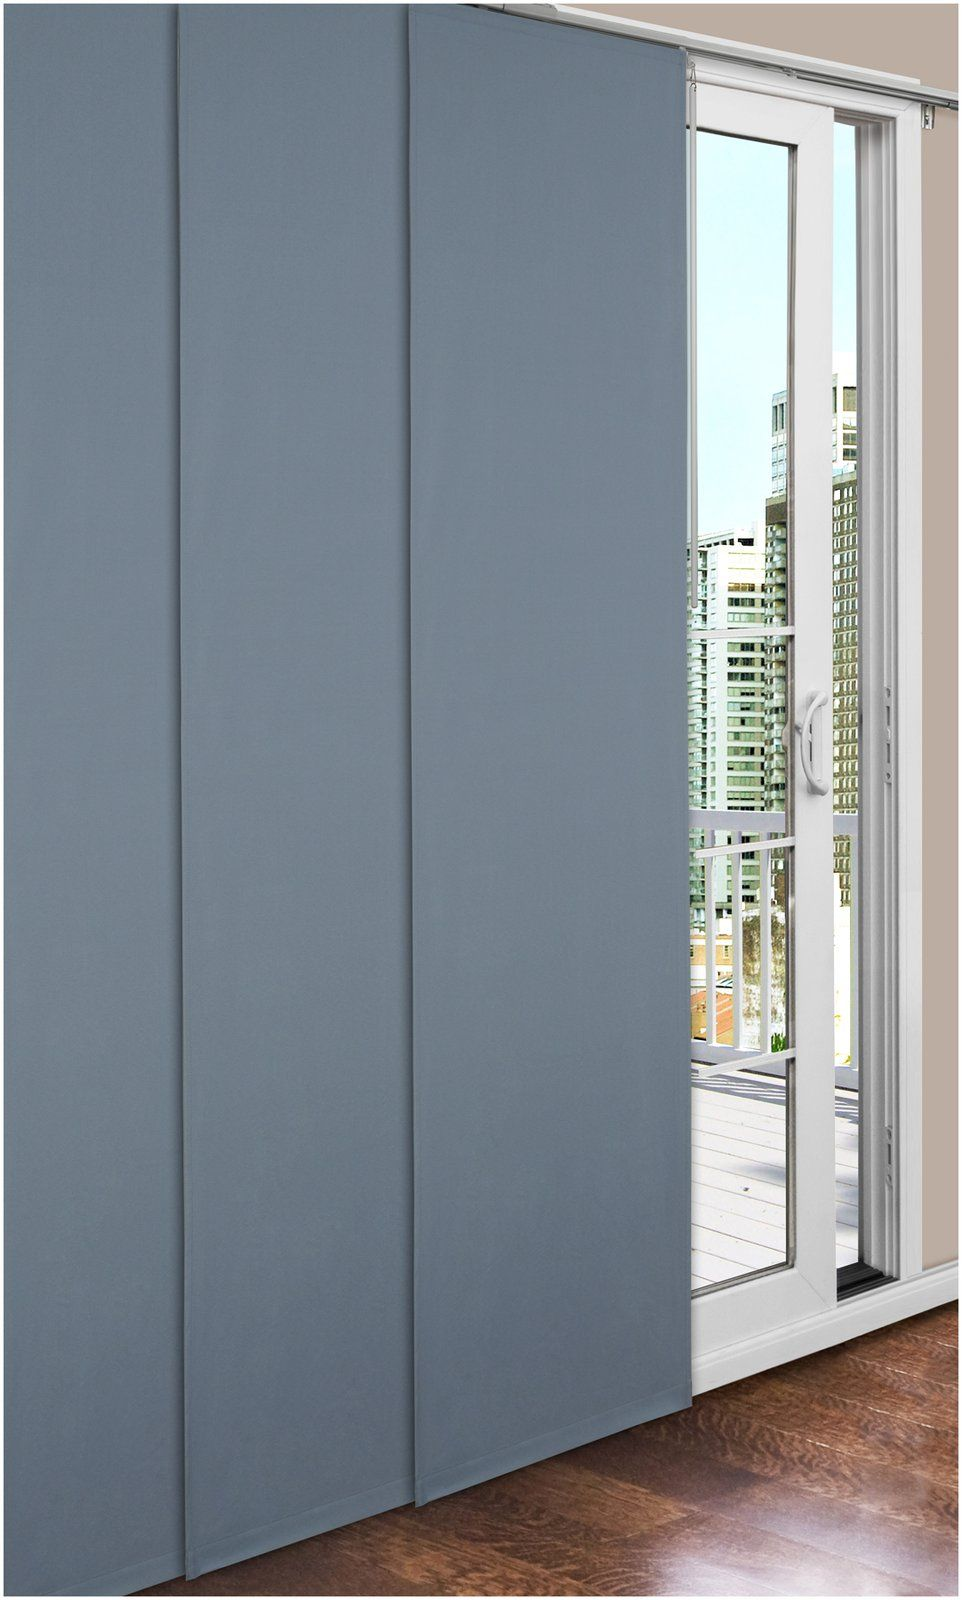 Commonwealth Home Fashions Thermalogic Insulated Sliding Track Panel